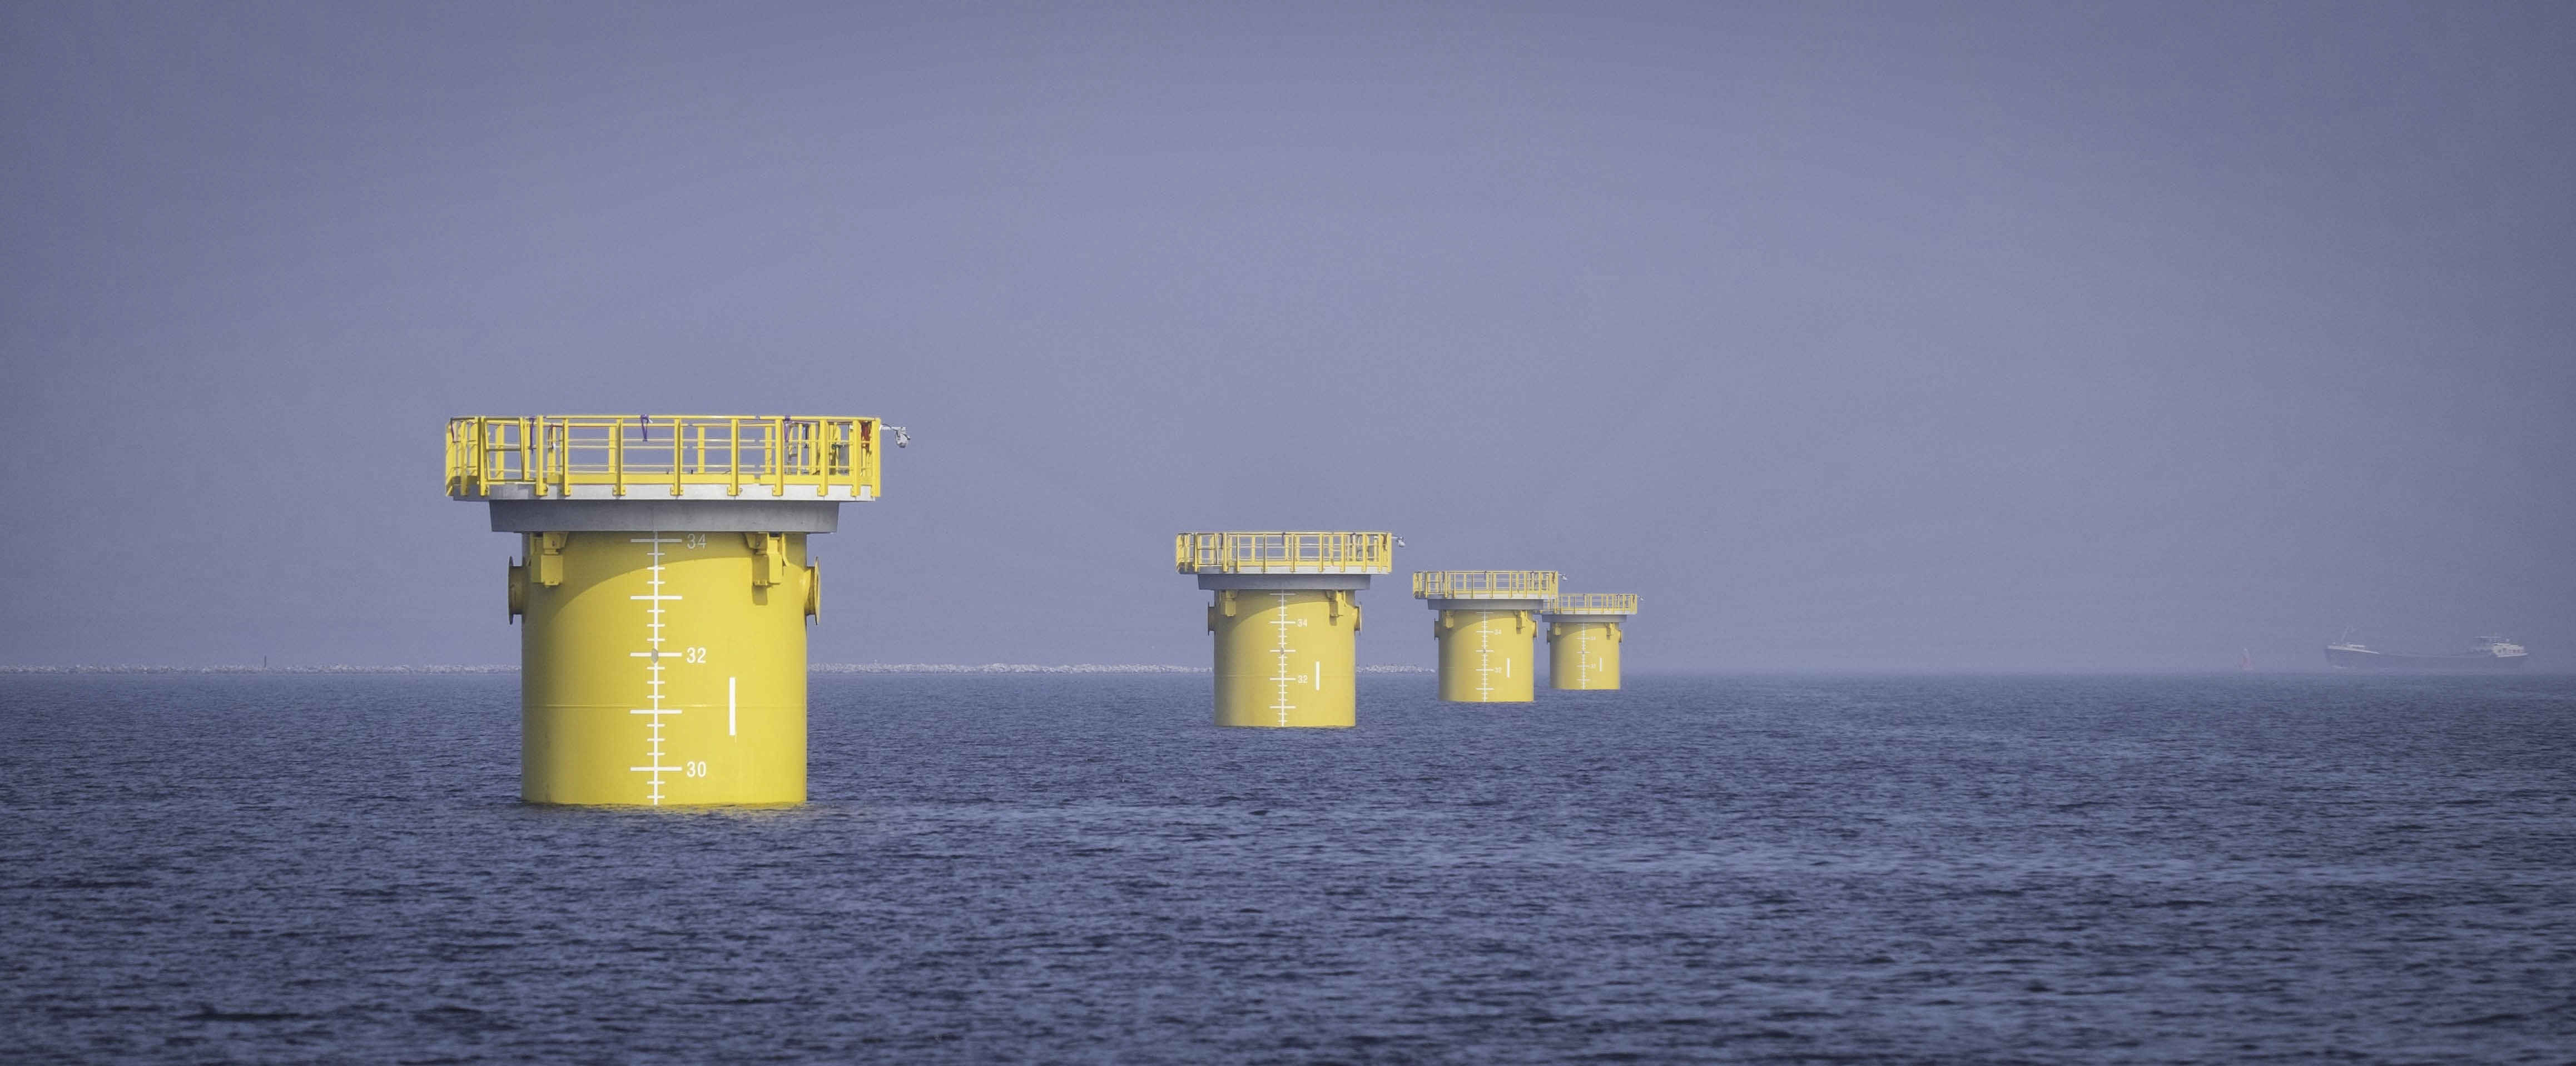 Last foundation pile installed for Westermeerwind nearshore wind farm